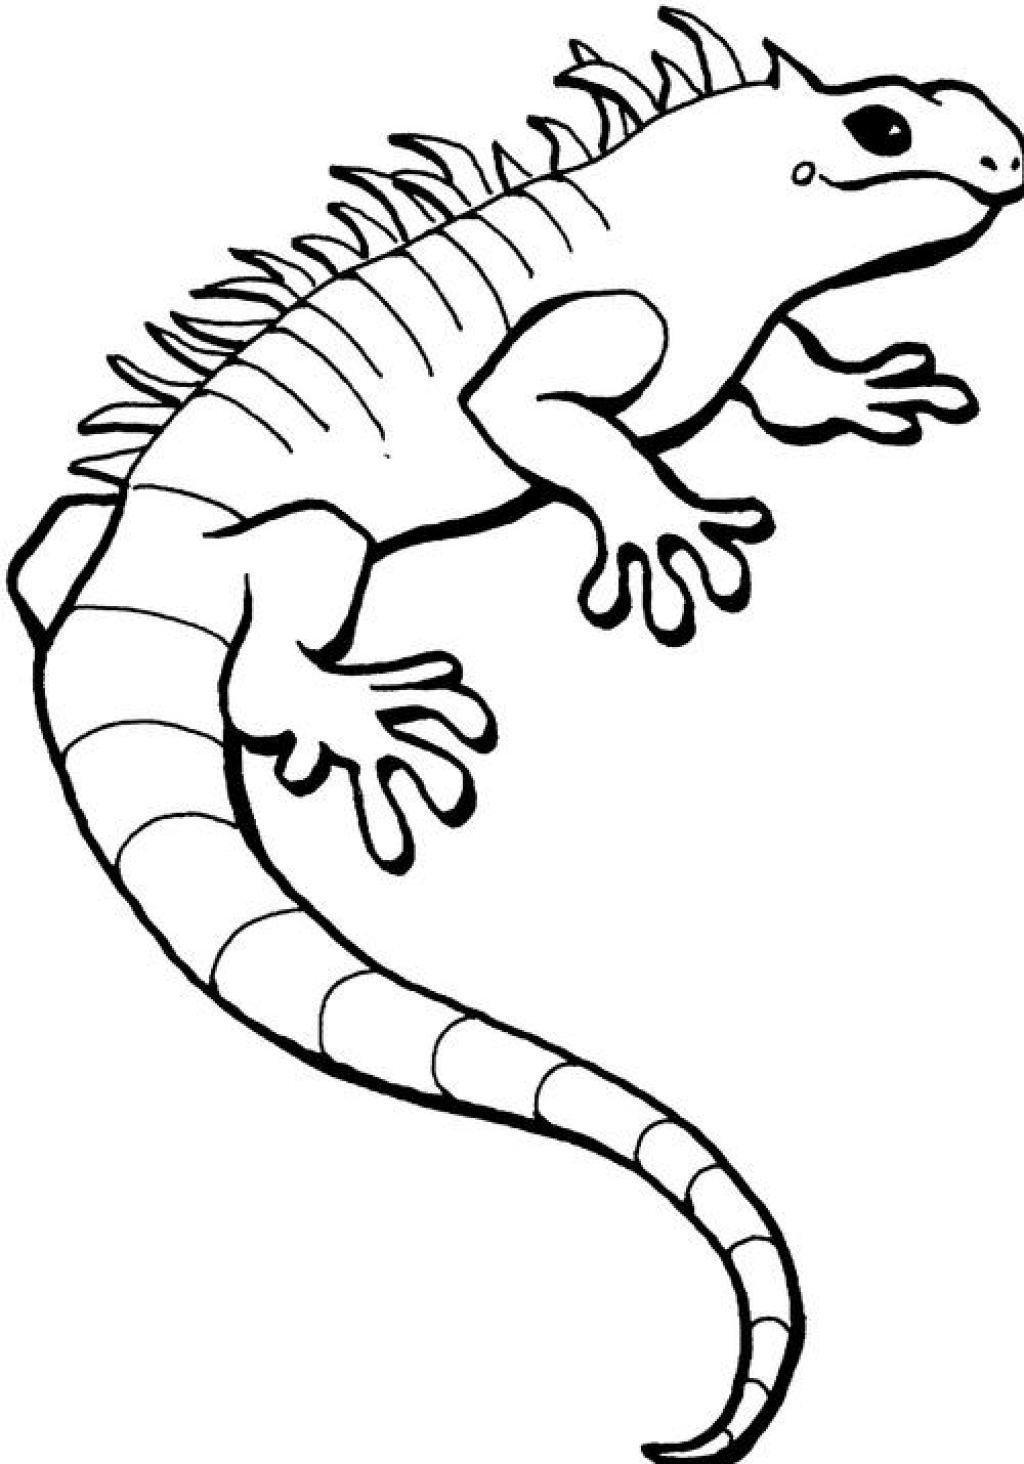 iguana coloring pages free printable iguana coloring pages for kids